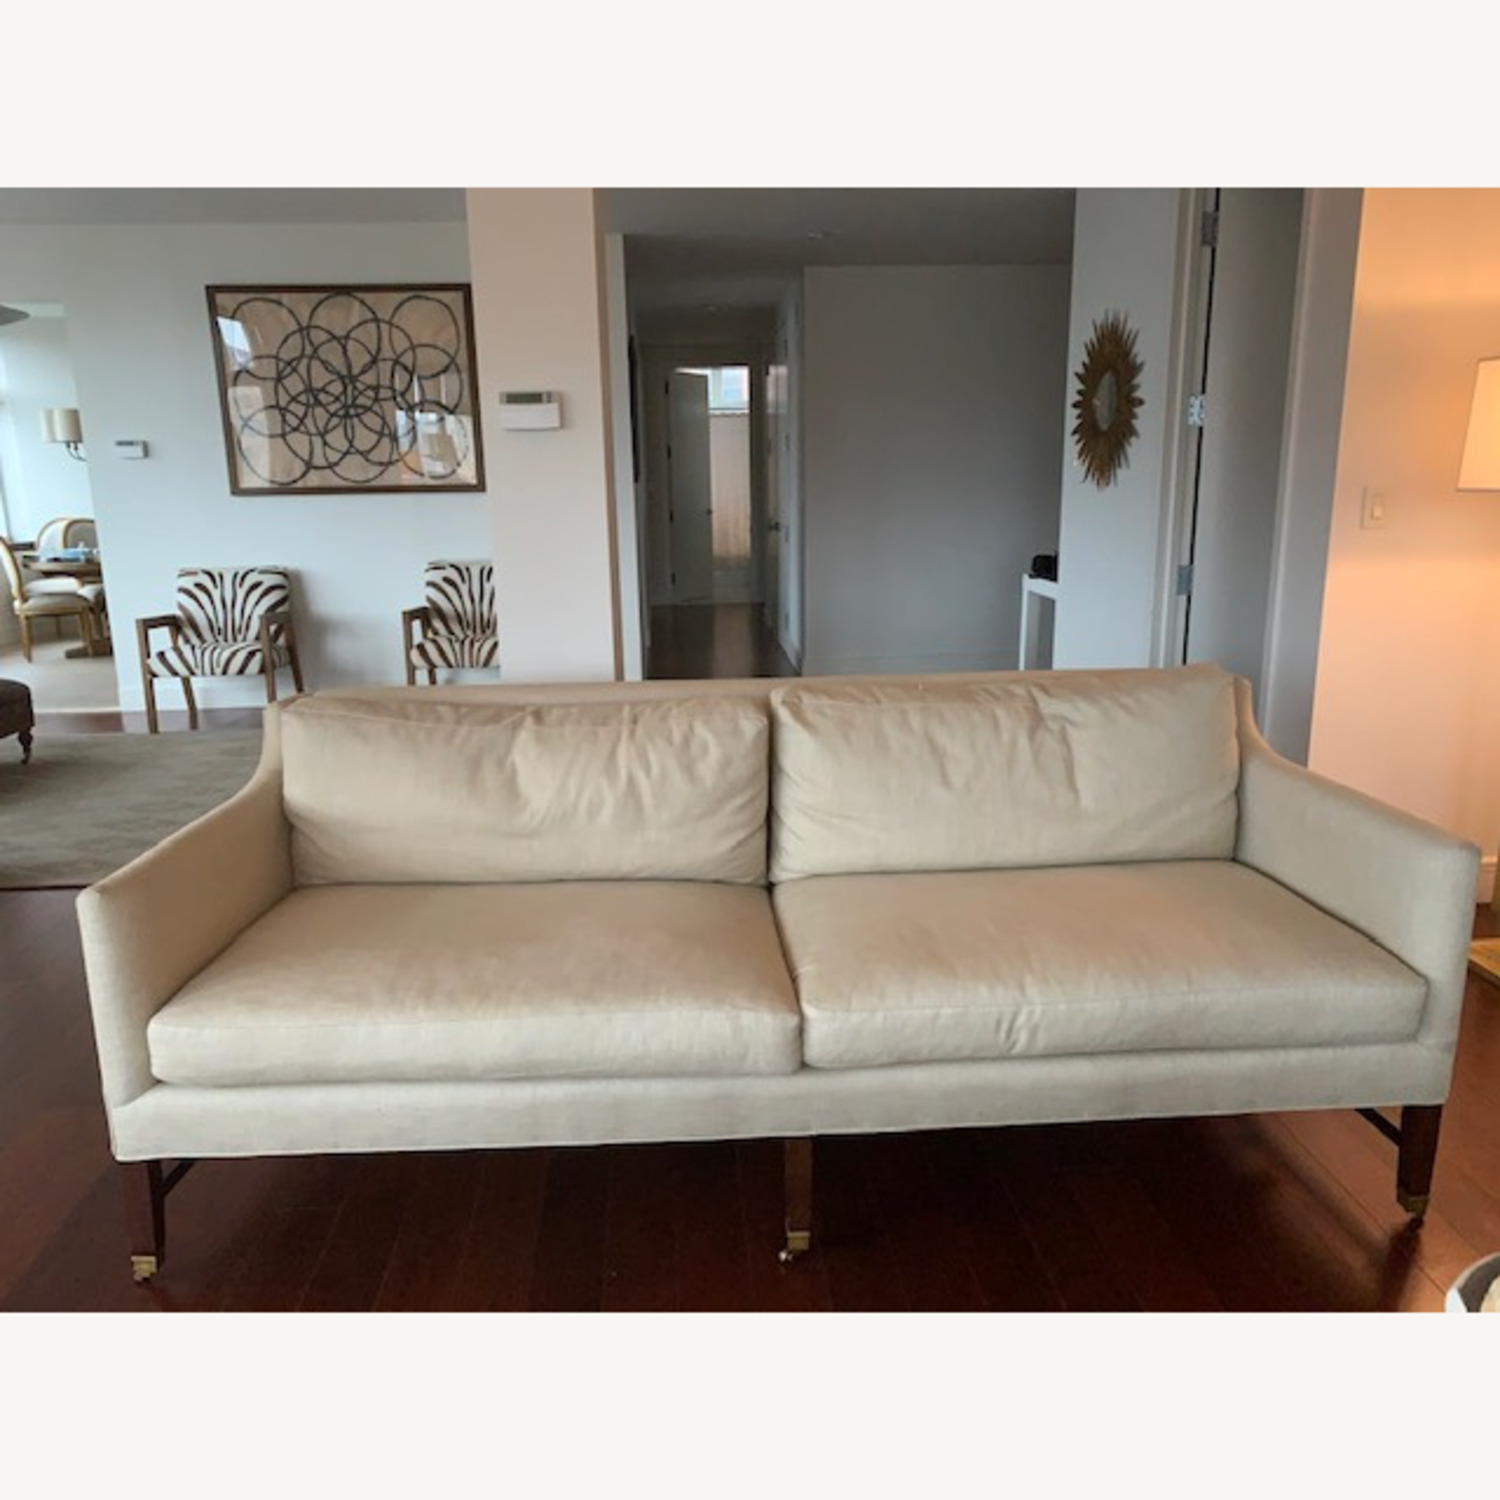 Lee Jofa Upholstered Sofas with Bronze Capped Legs - image-1